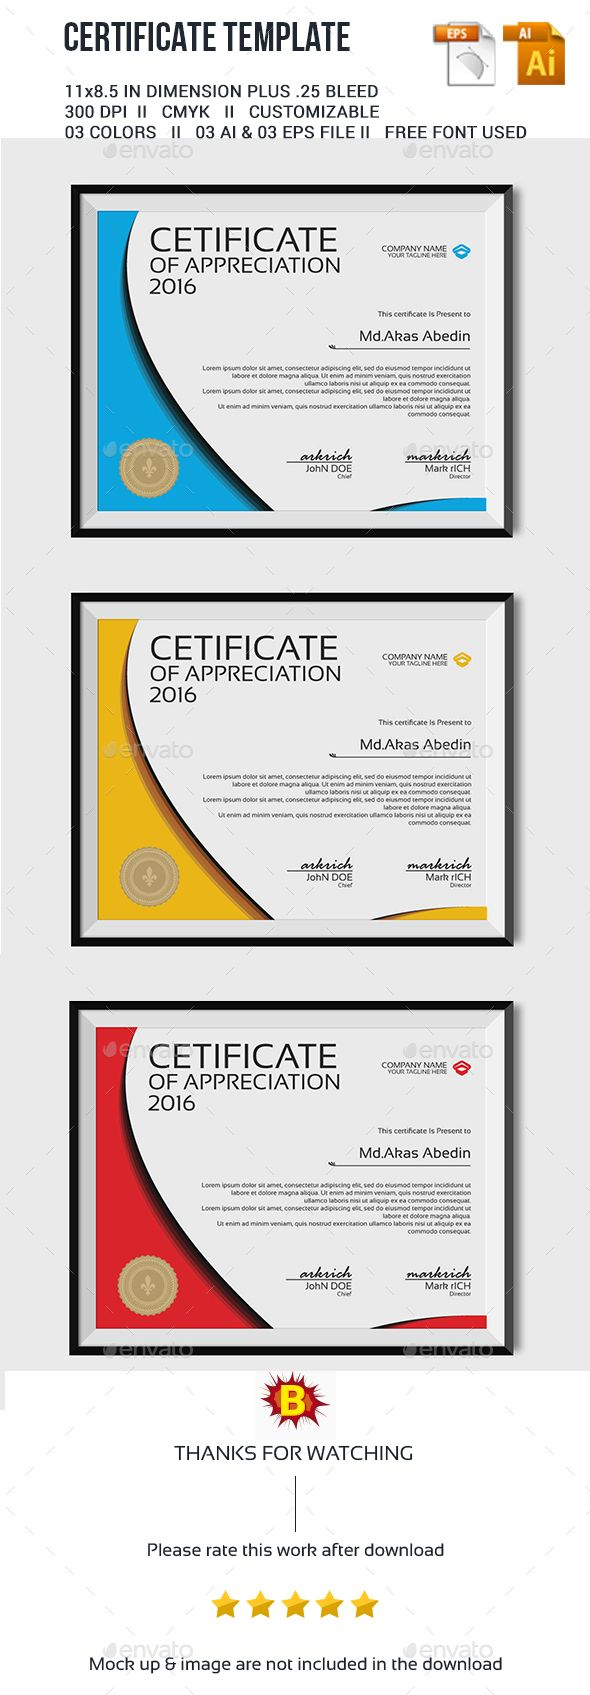 186 best Certificate images on Pinterest | Certificate templates ...